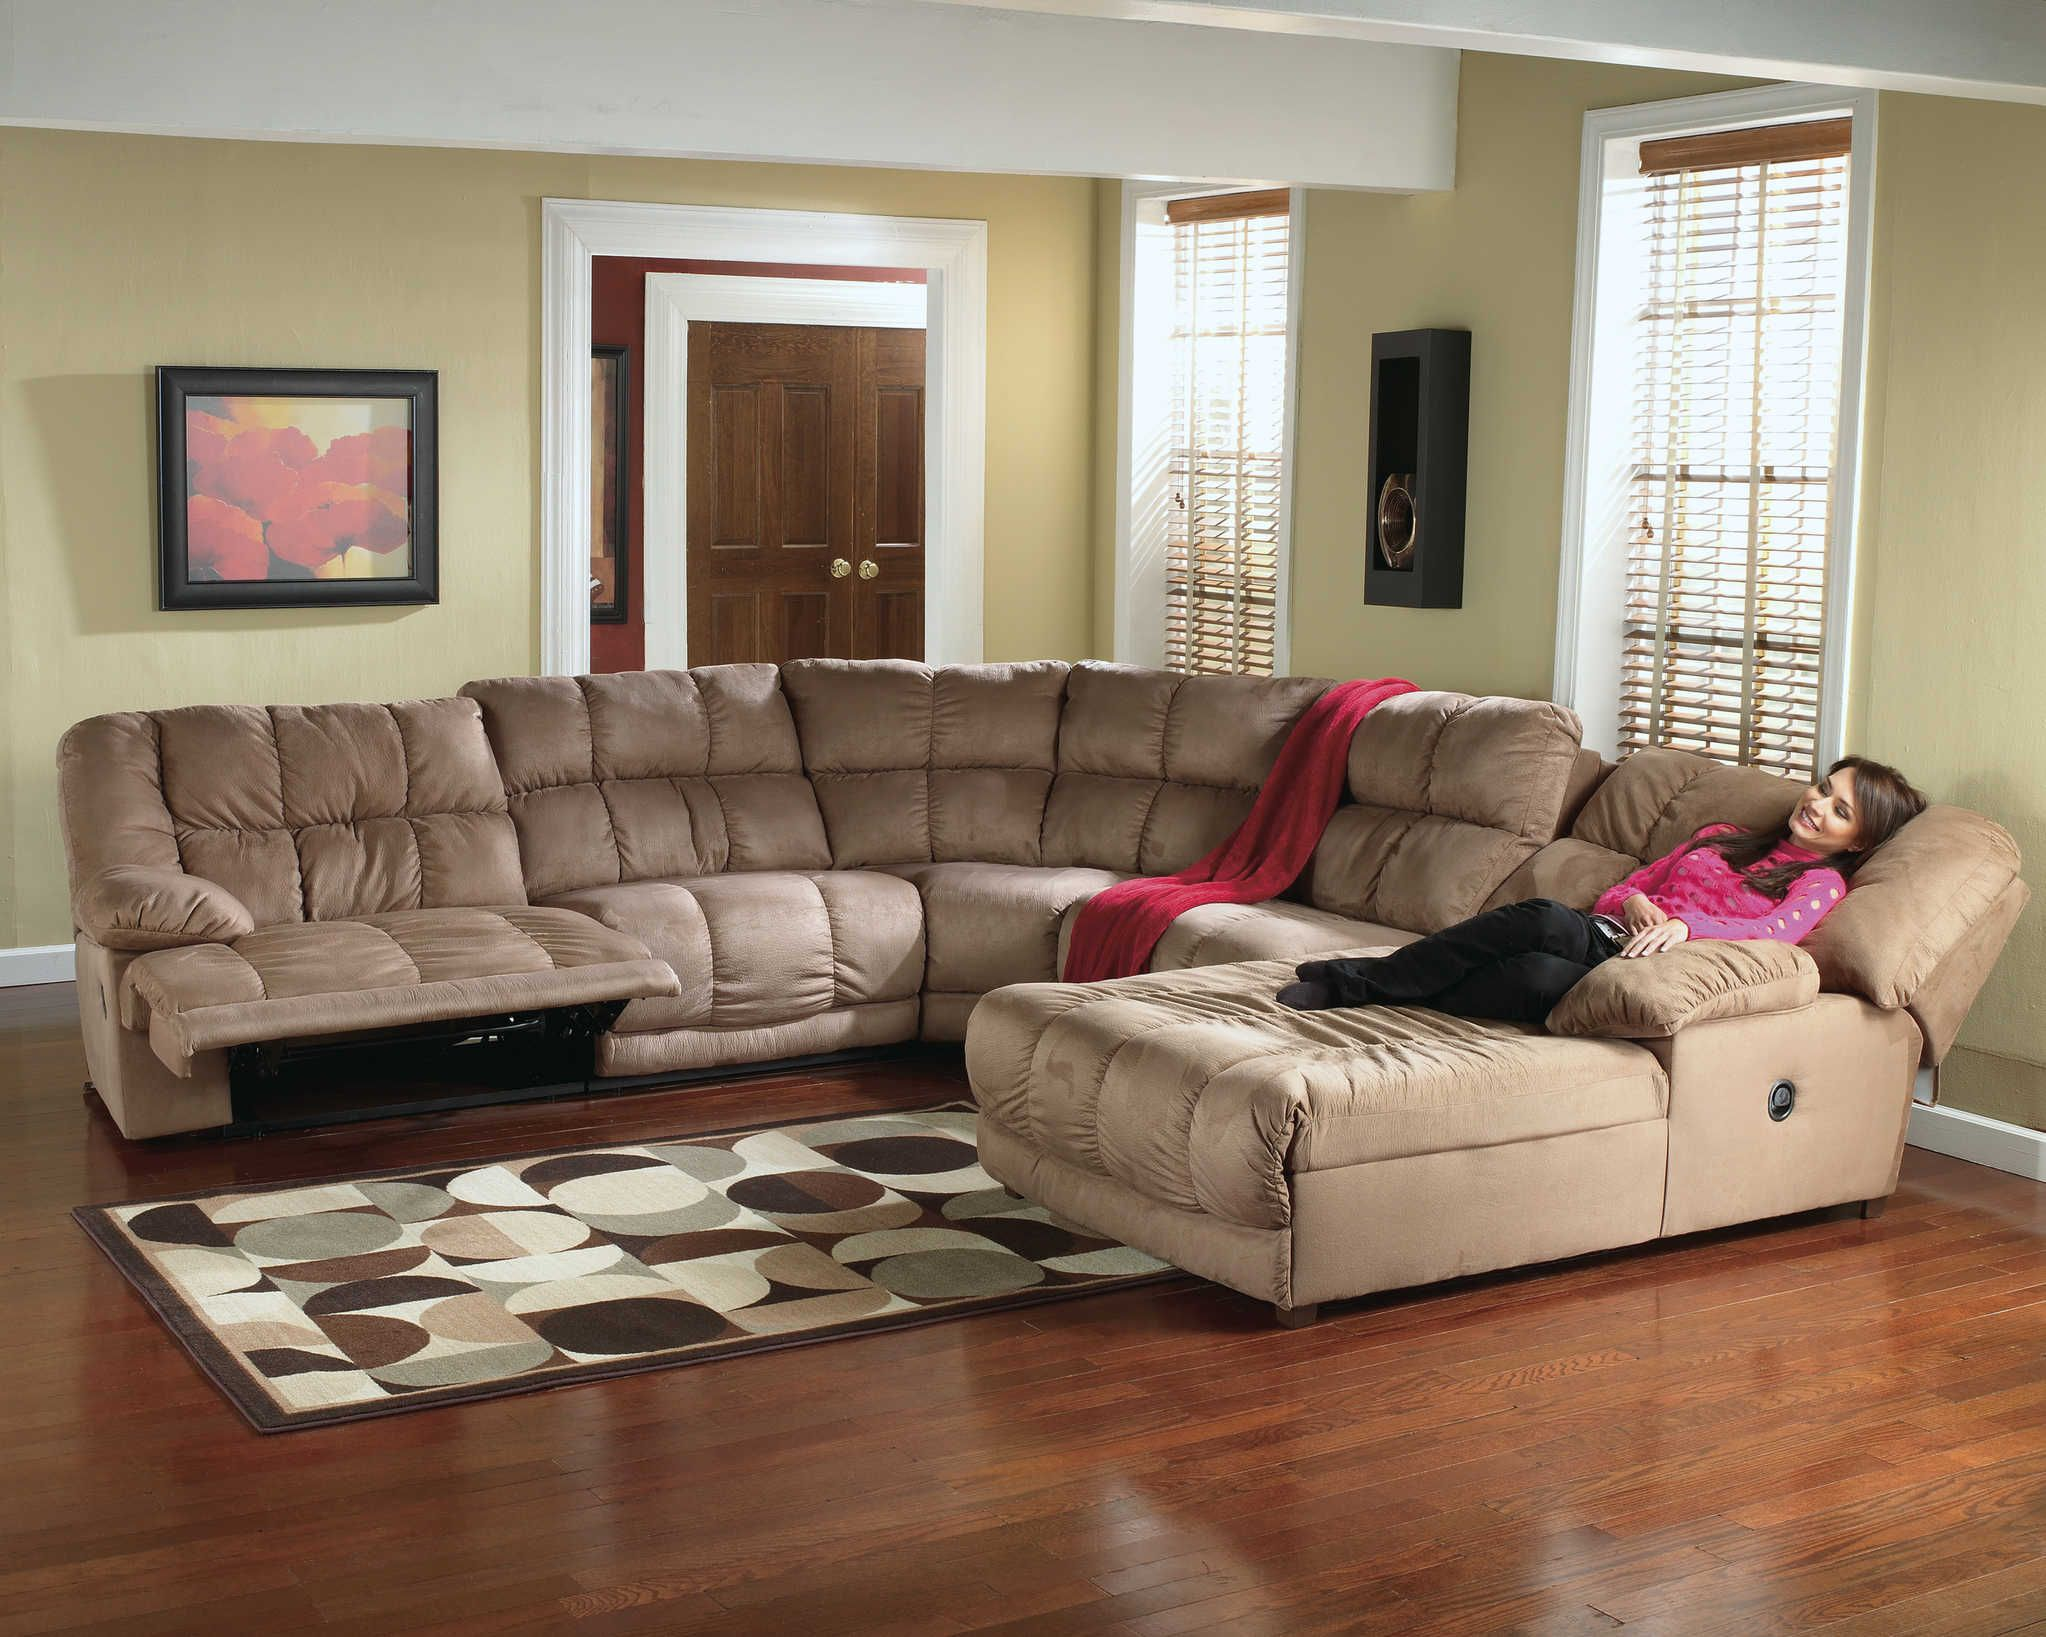 Microfiber Recliner Sectional Sectional Sofa Recliner Chaise 260 Living Room Makeover